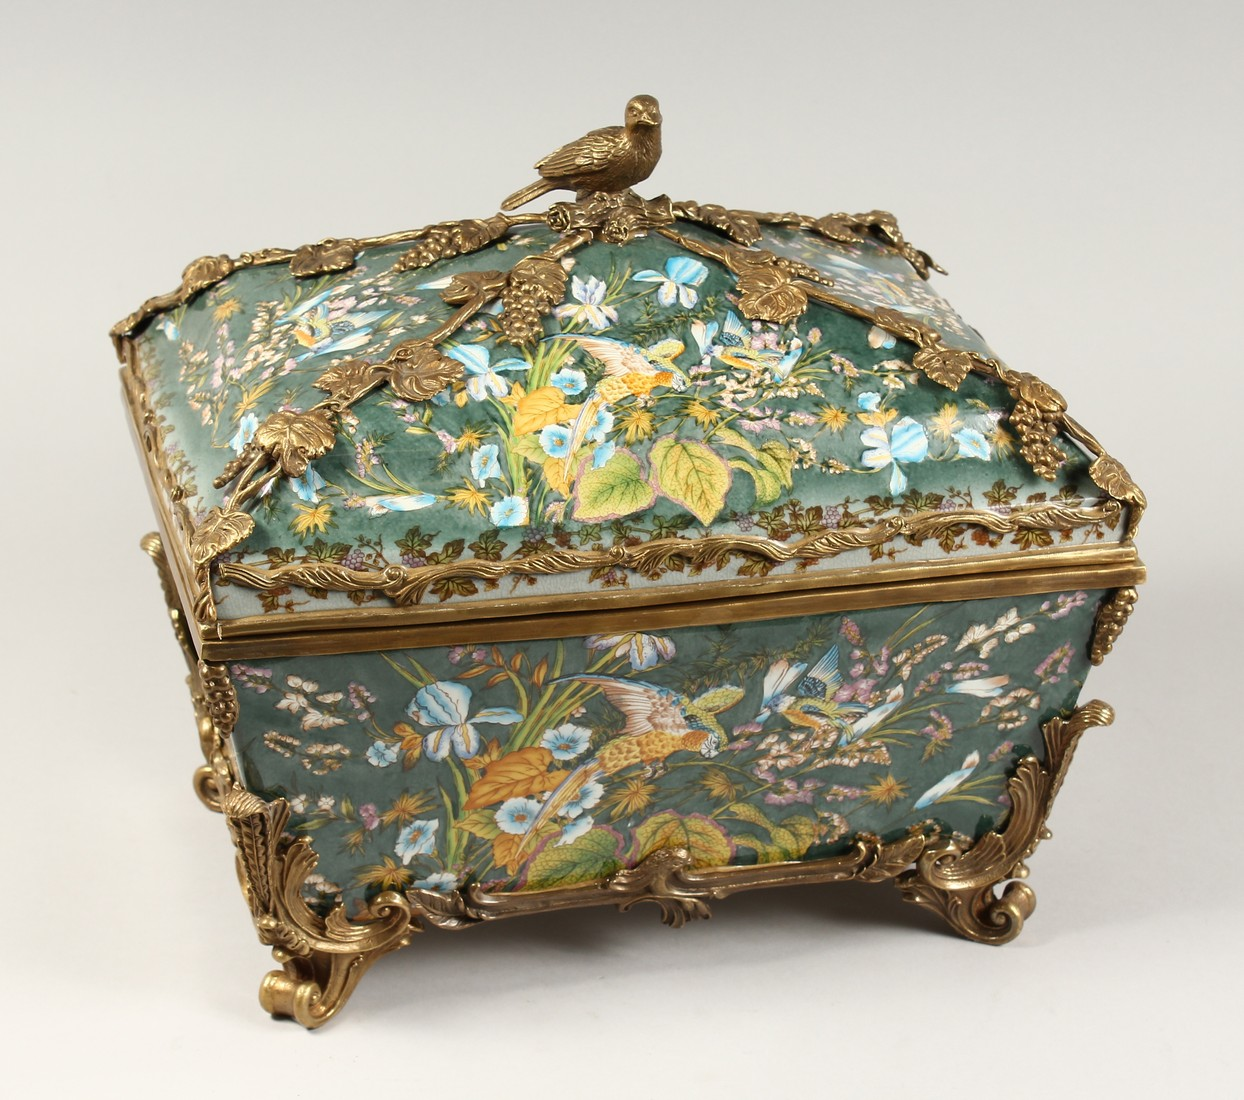 A LARGE CONTINENTAL STYLE PORCELAIN AND BRONZE MOUNTED CASKET, decorated with exotic flowers and